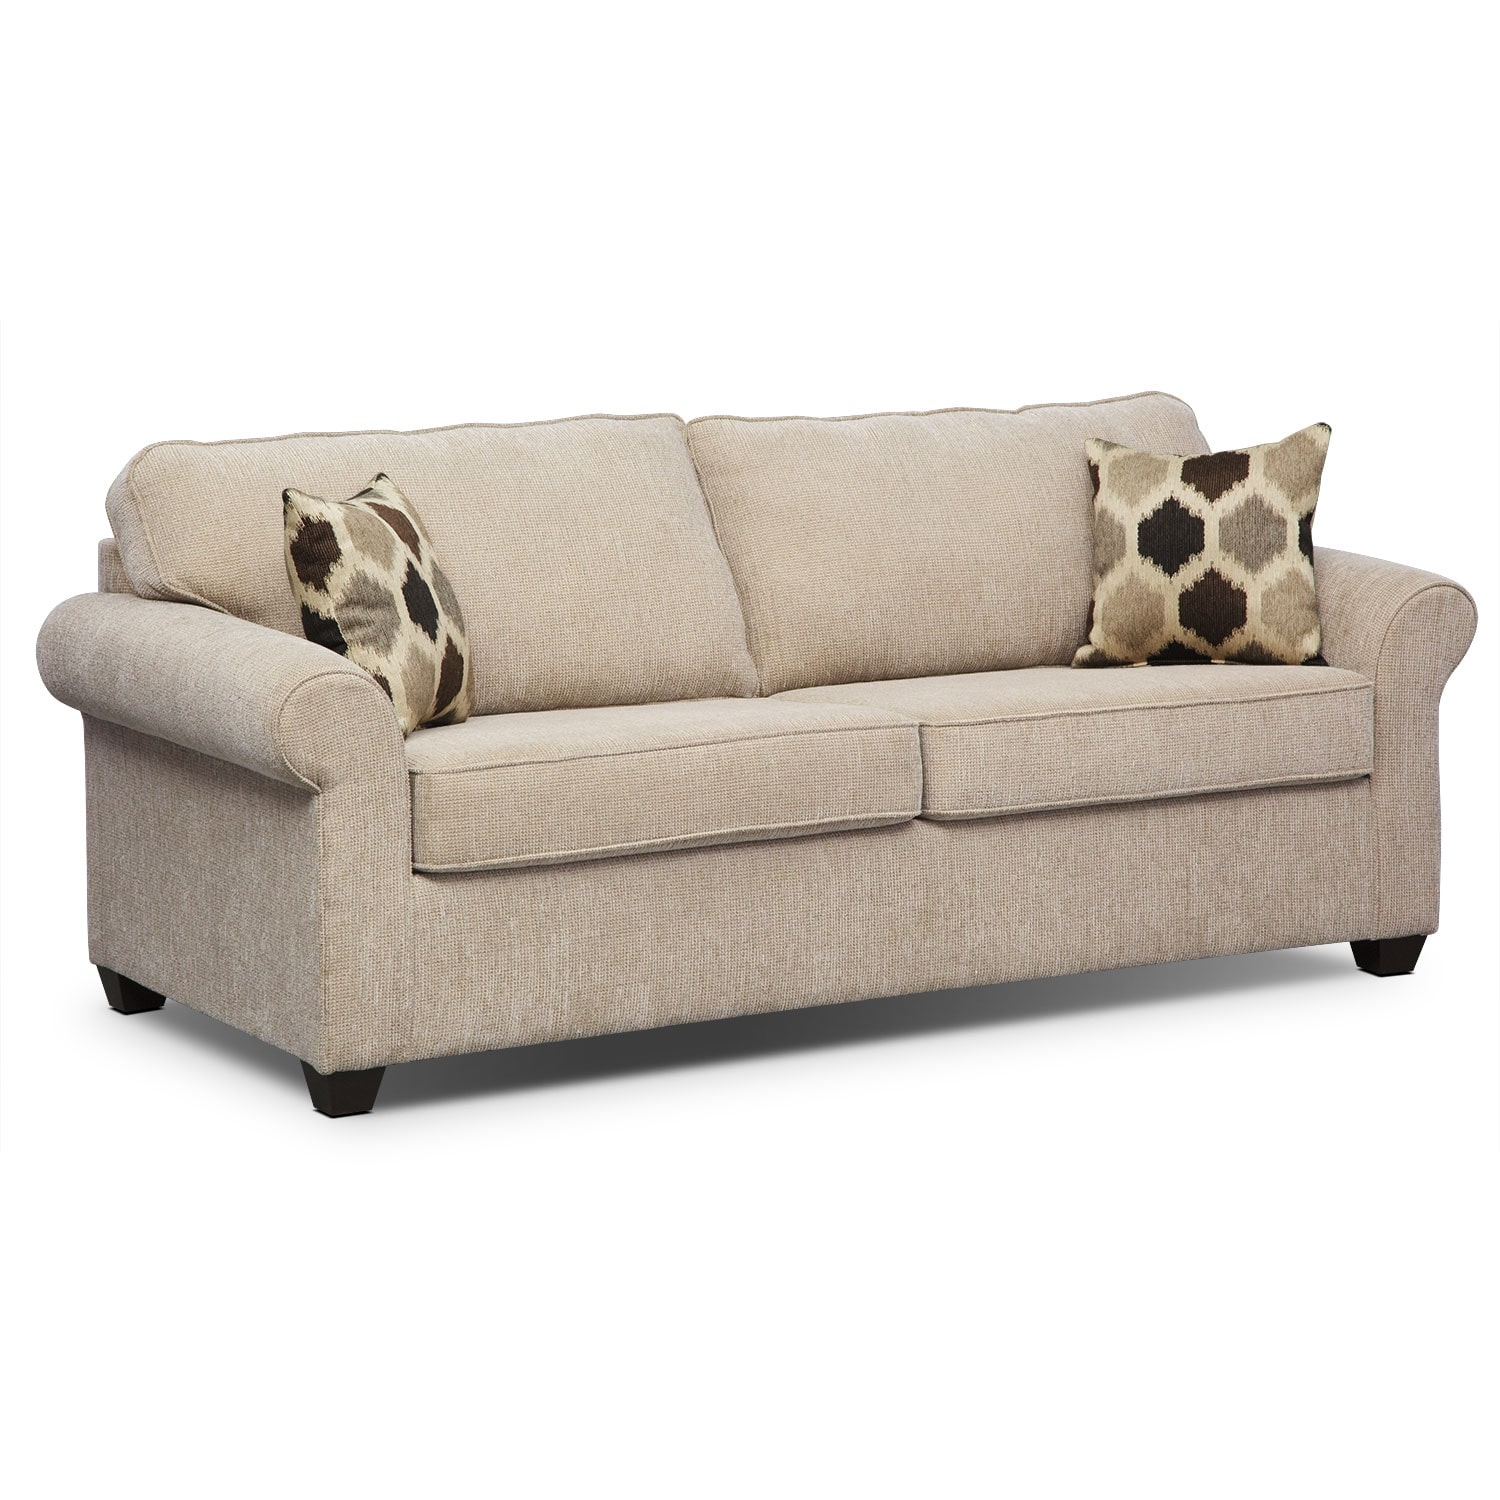 fletcher queen innerspring sleeper sofa value city furniture